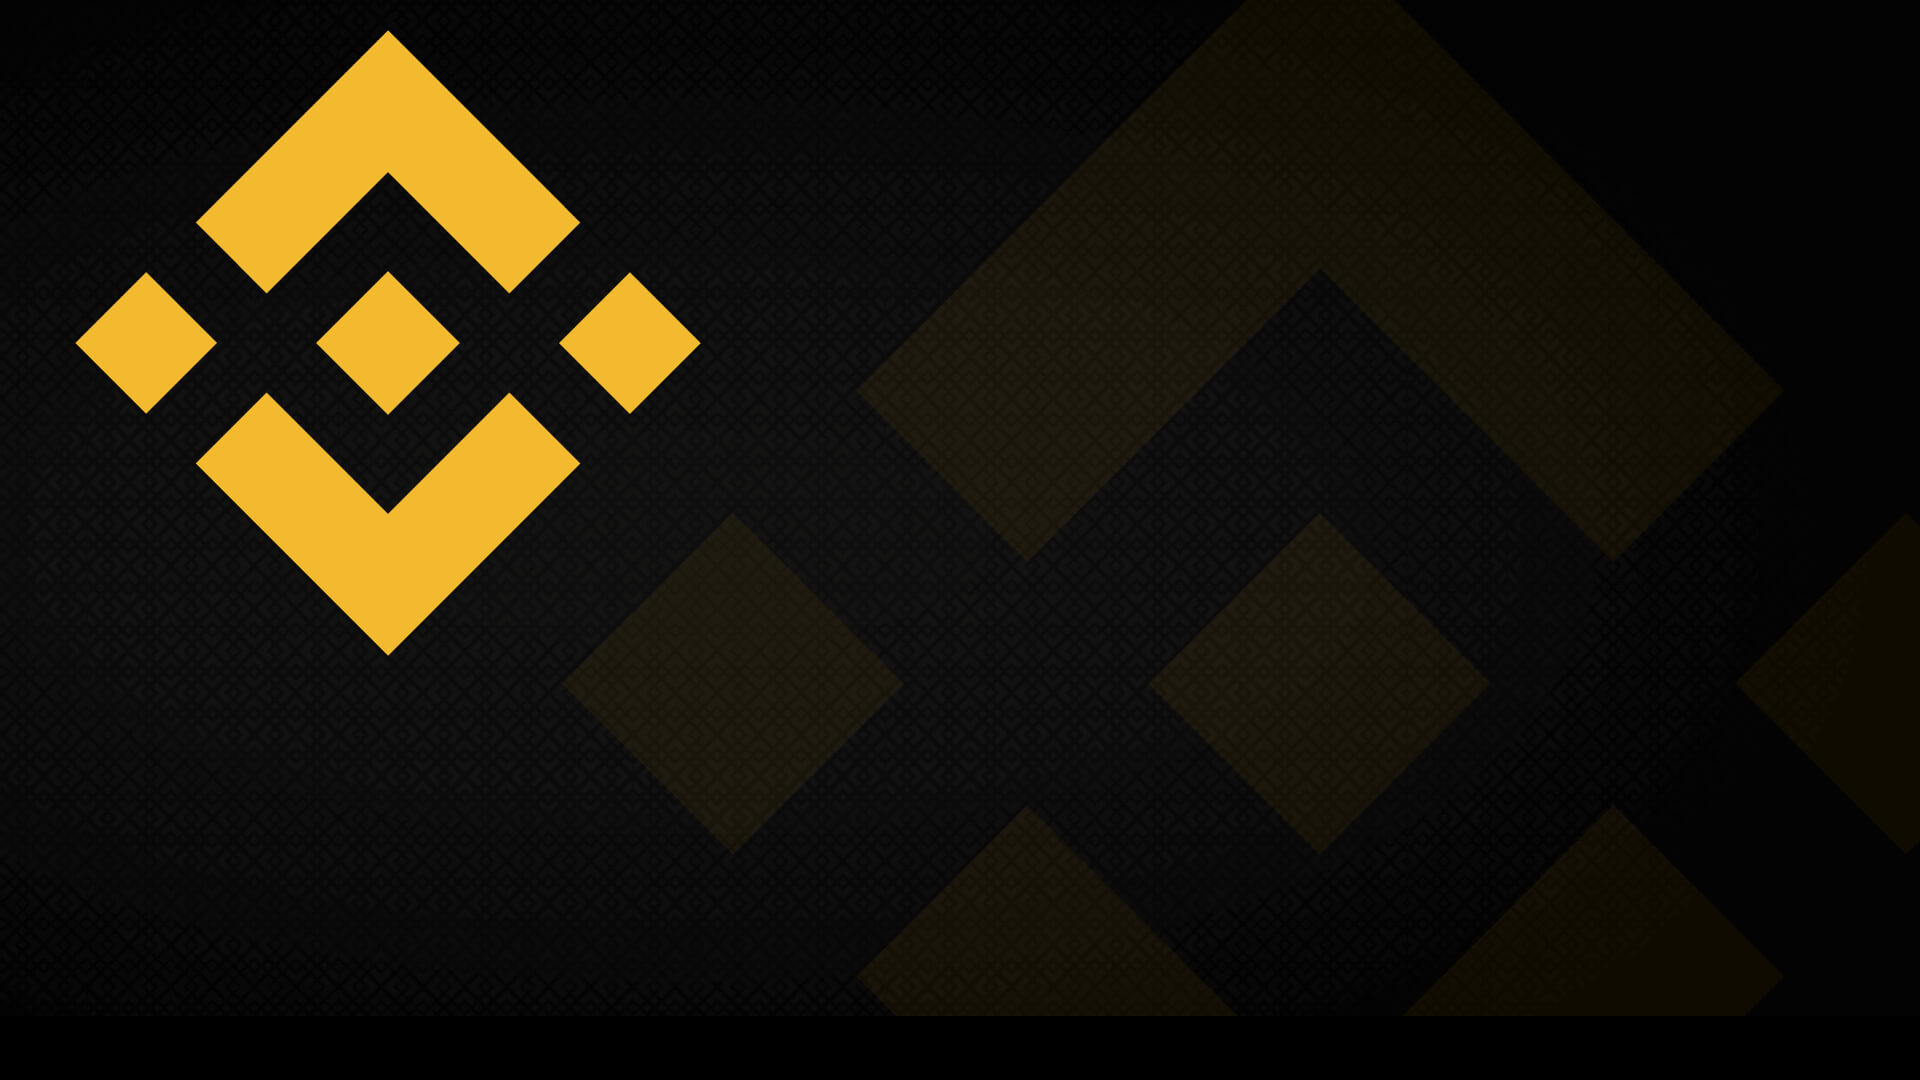 Binance Upgrades User Interface Ahead of Margin Trading Launch